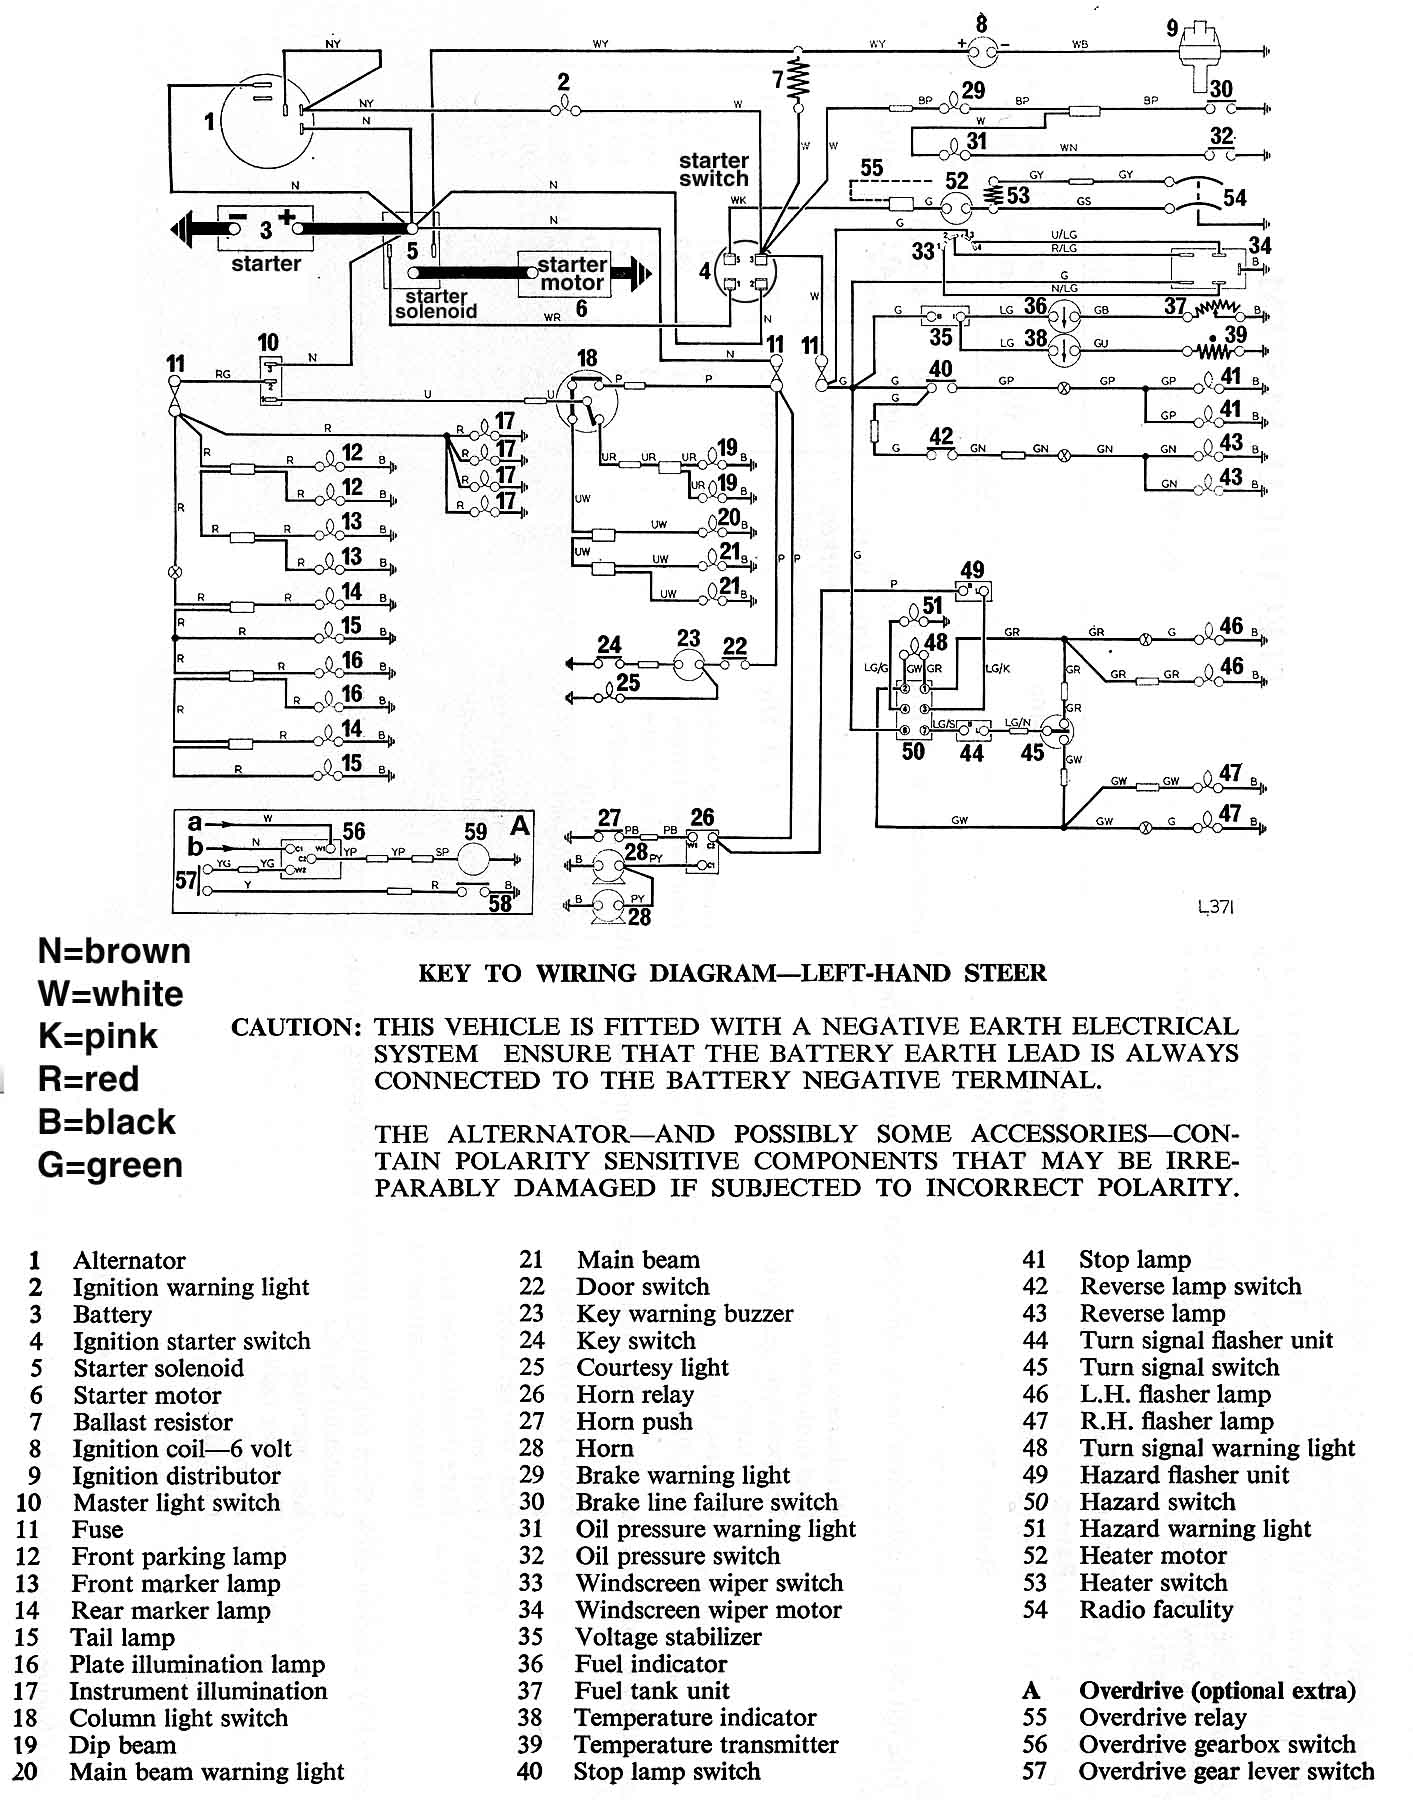 wiring schematics and diagrams triumph spitfire, gt6, heraldspitfire mkiv wiring diagram